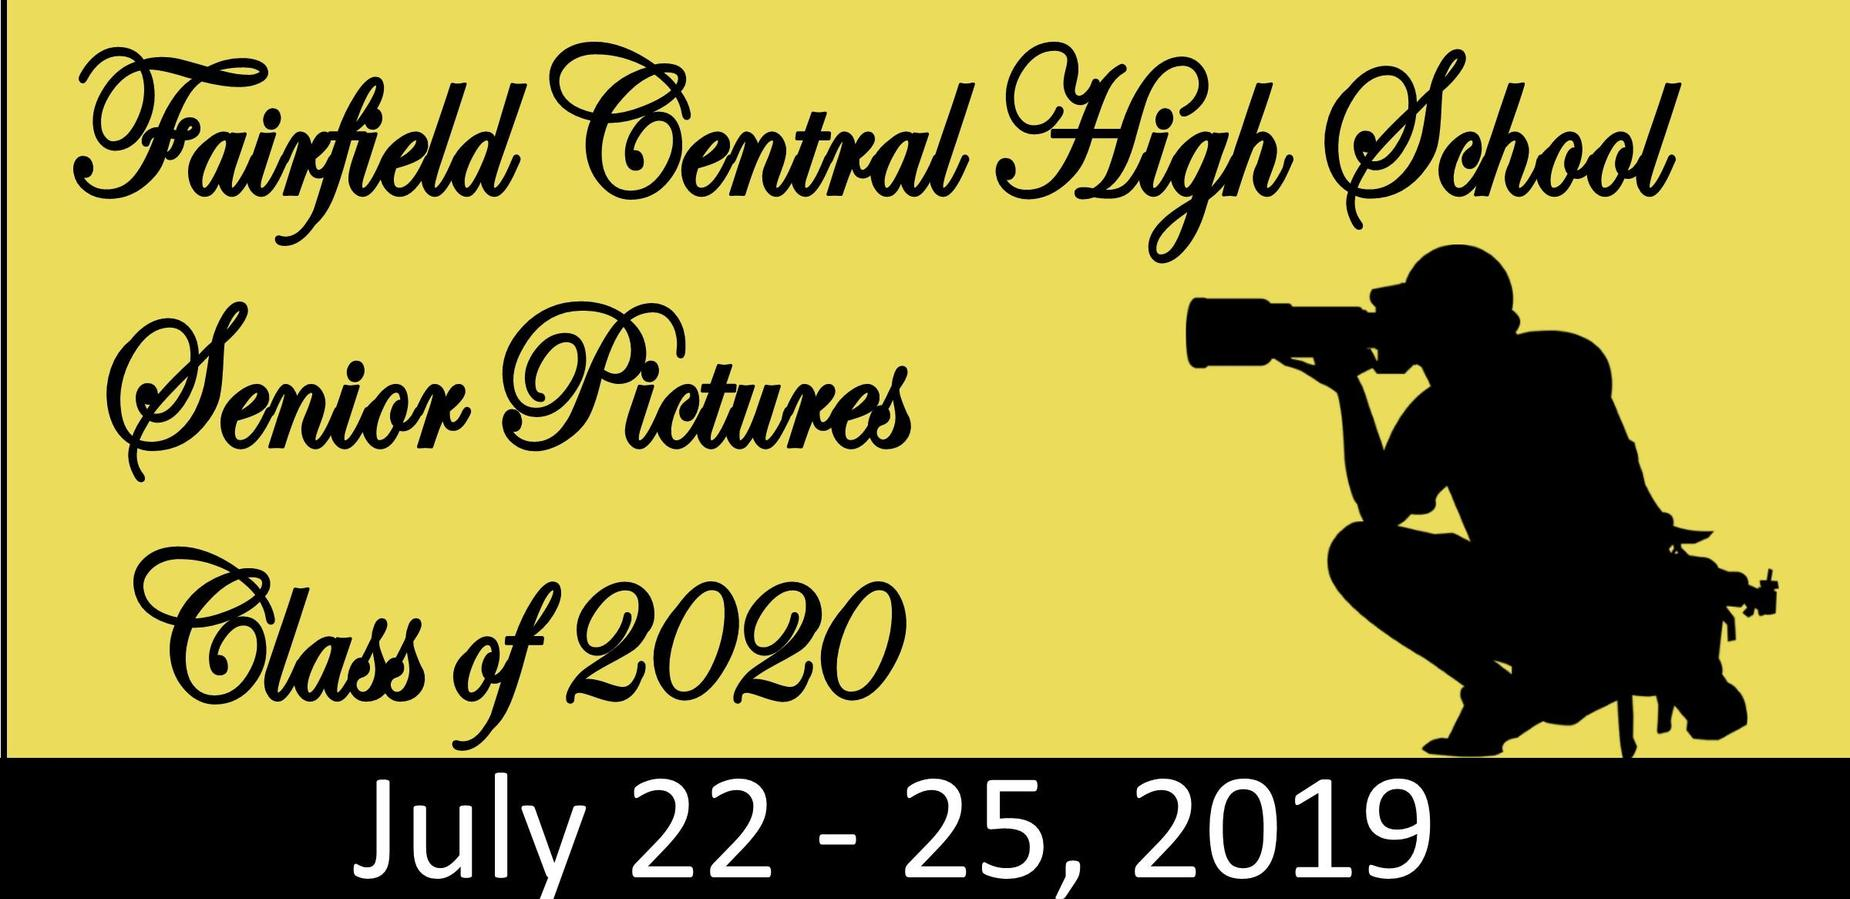 FCHS Senior Pics C/o 2020 July 22-25, 2019